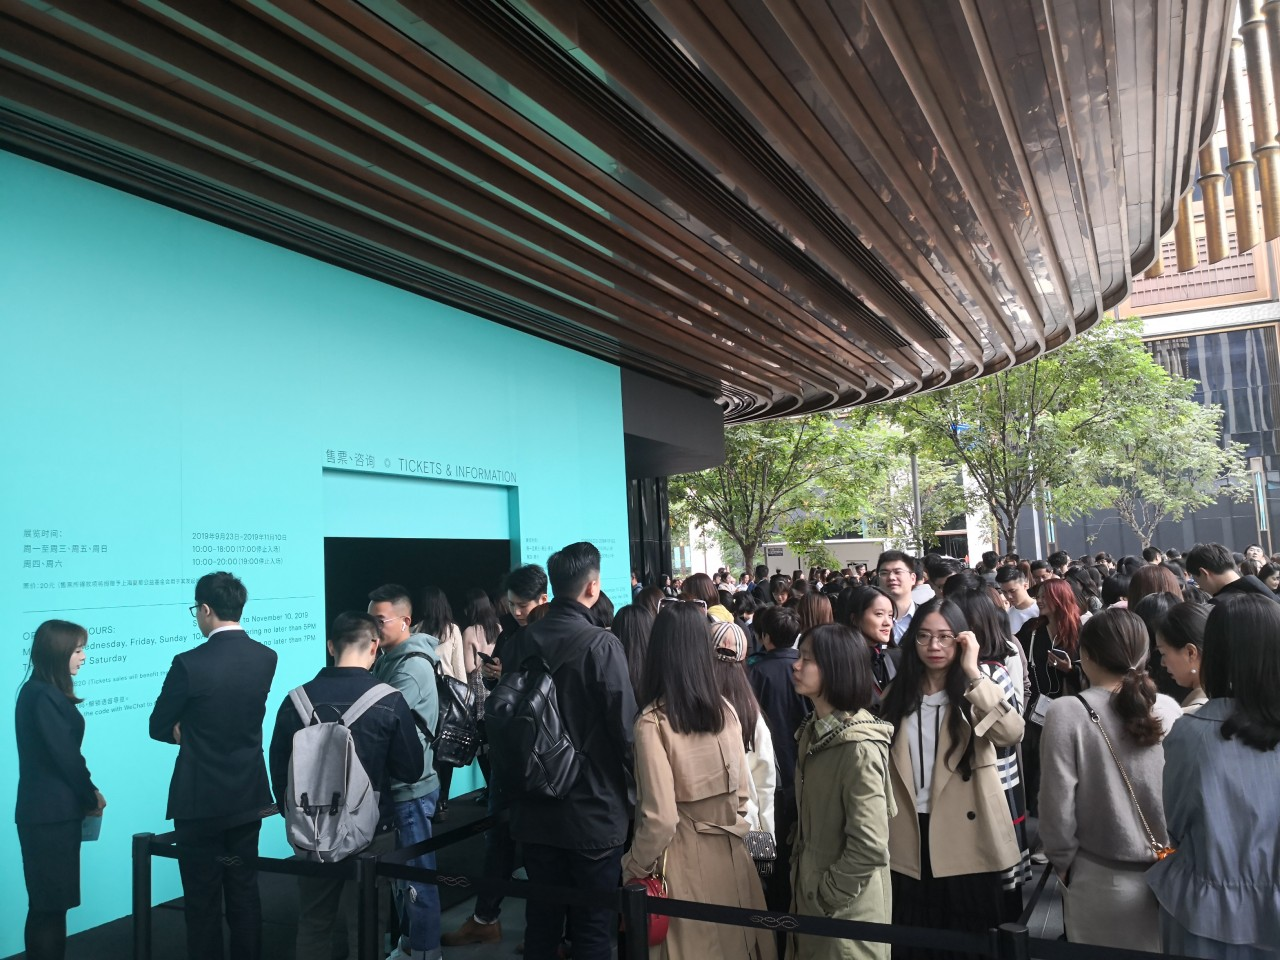 Tiffany & Co.'s grand exhibition in Shanghai drew a large crowd, eager to experience Tiffany's big blue world. (Photo: Yang Danxu)